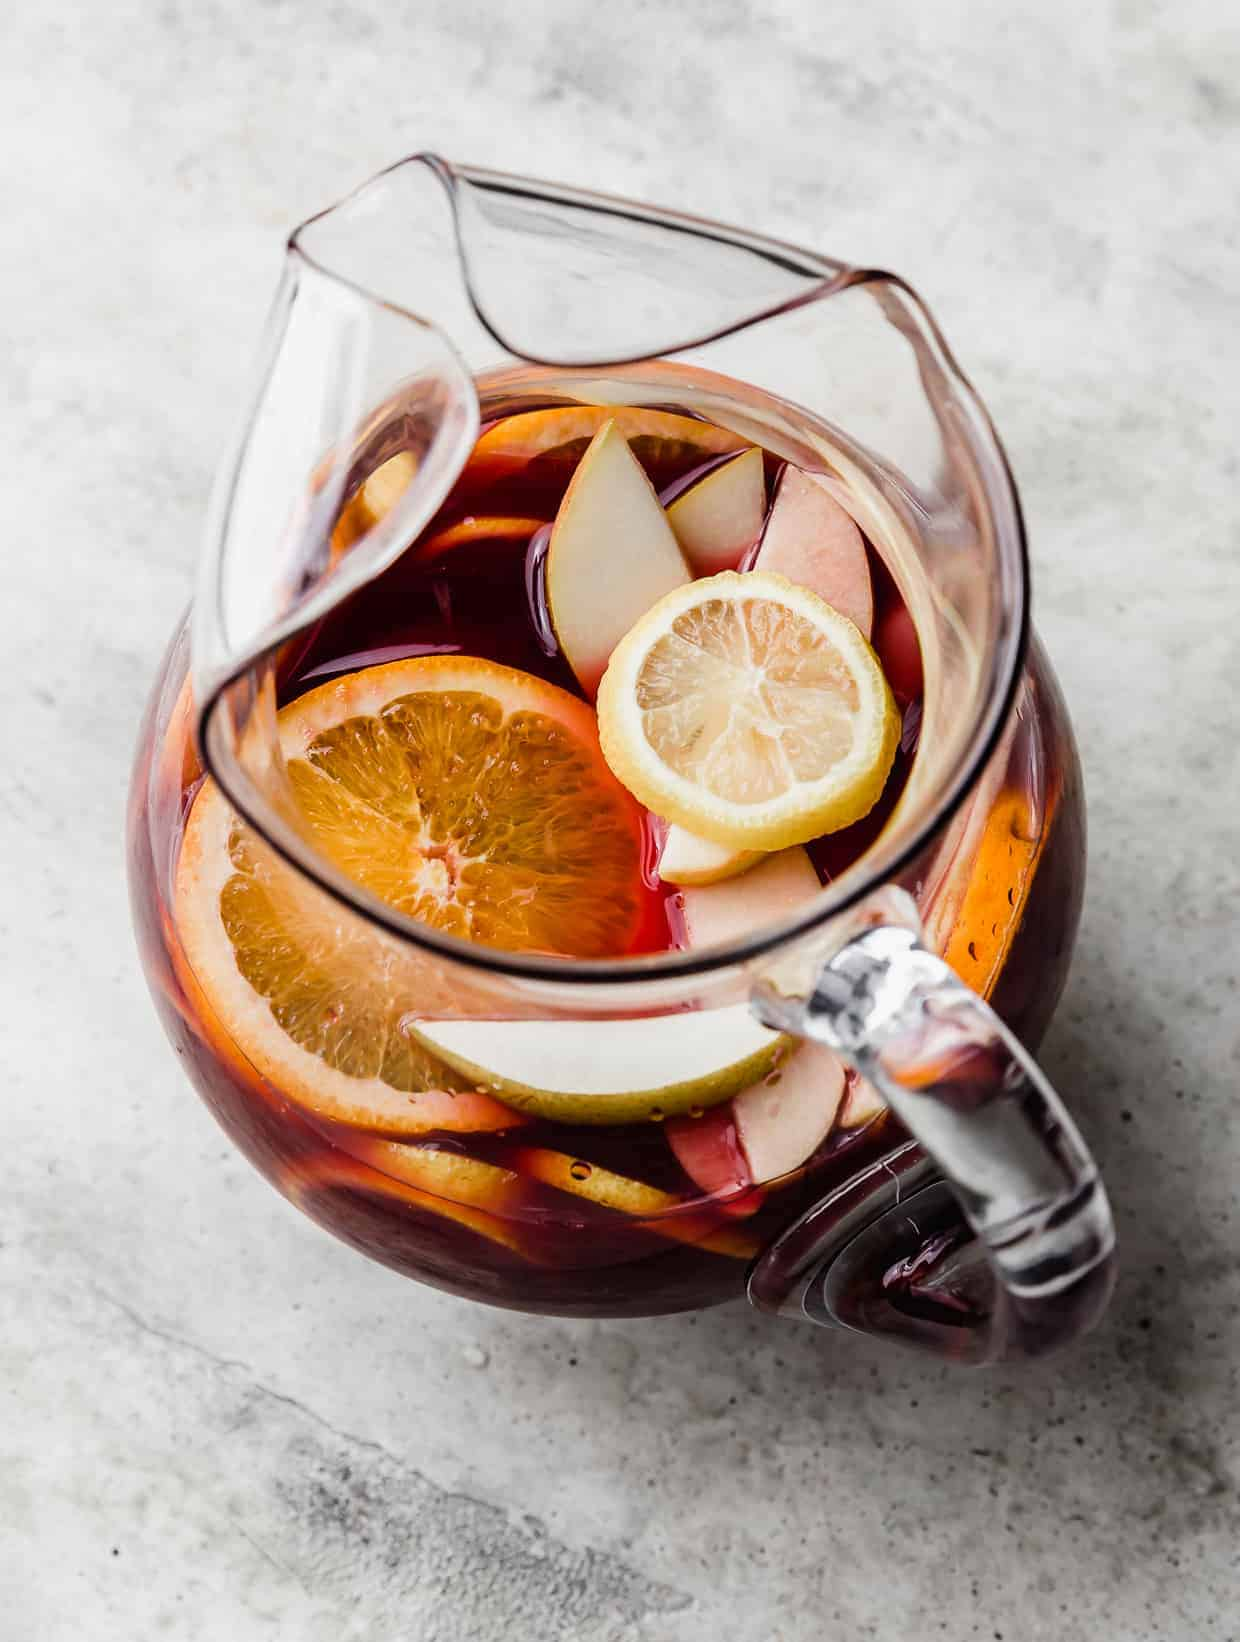 A virgin sangria drink in a glass pitcher with slices of fresh oranges, apples, lemons, and pears floating in the drink.